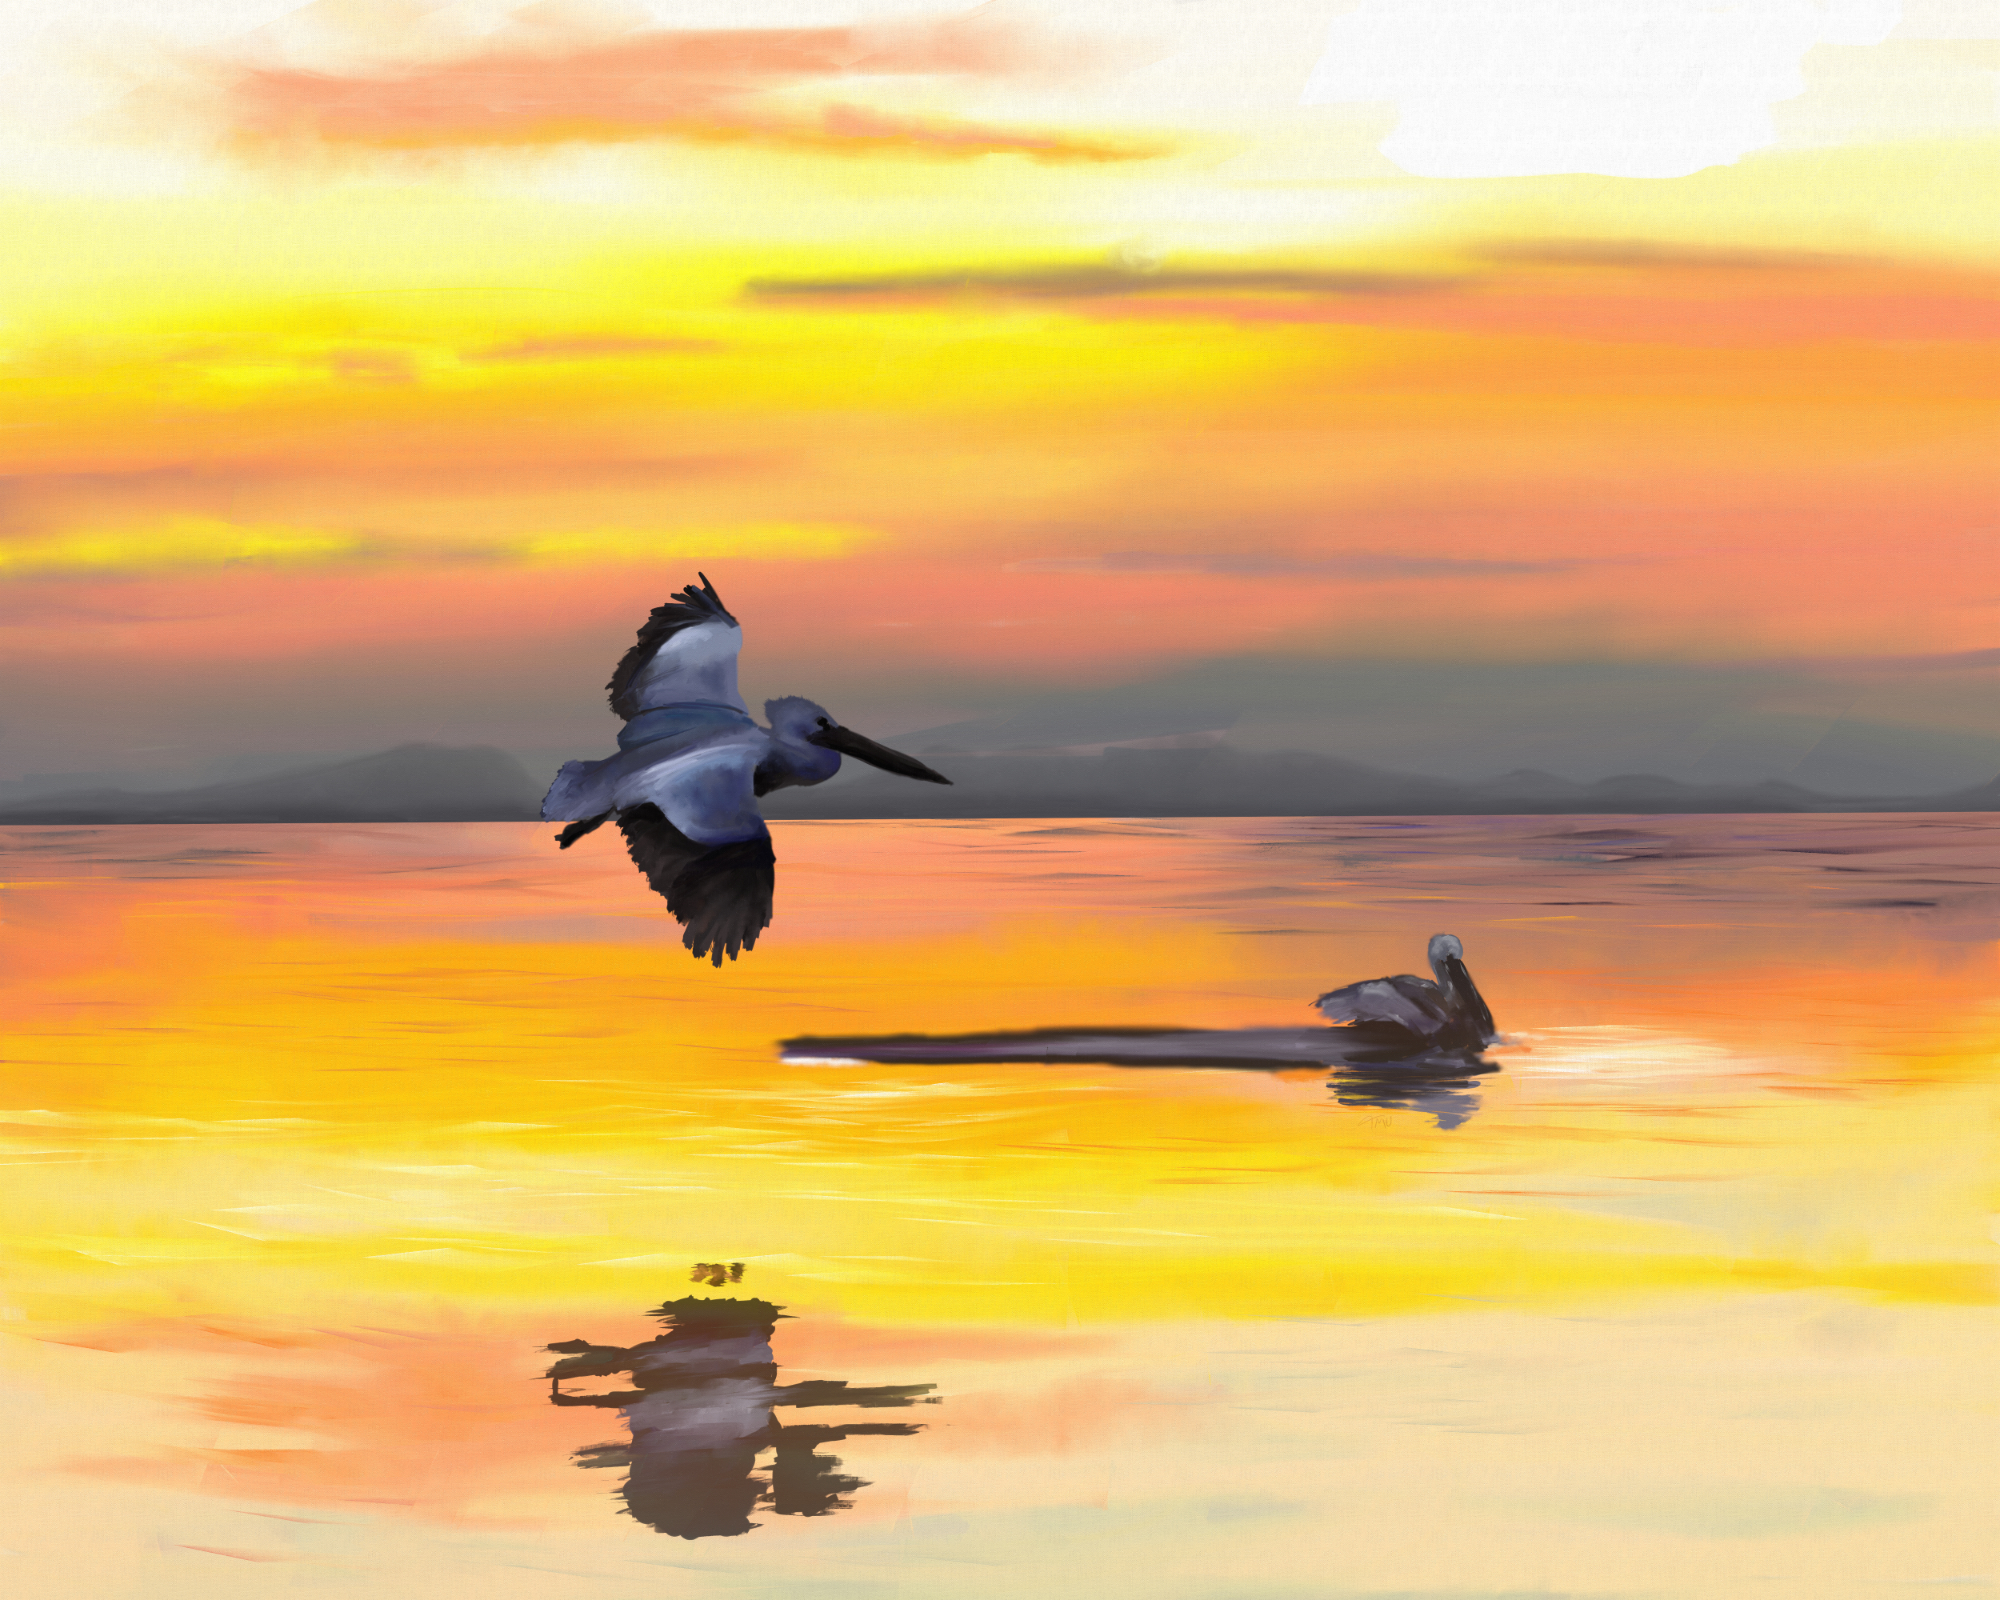 Digital acrylic painting of seabirds flying low over an ocean at sunset